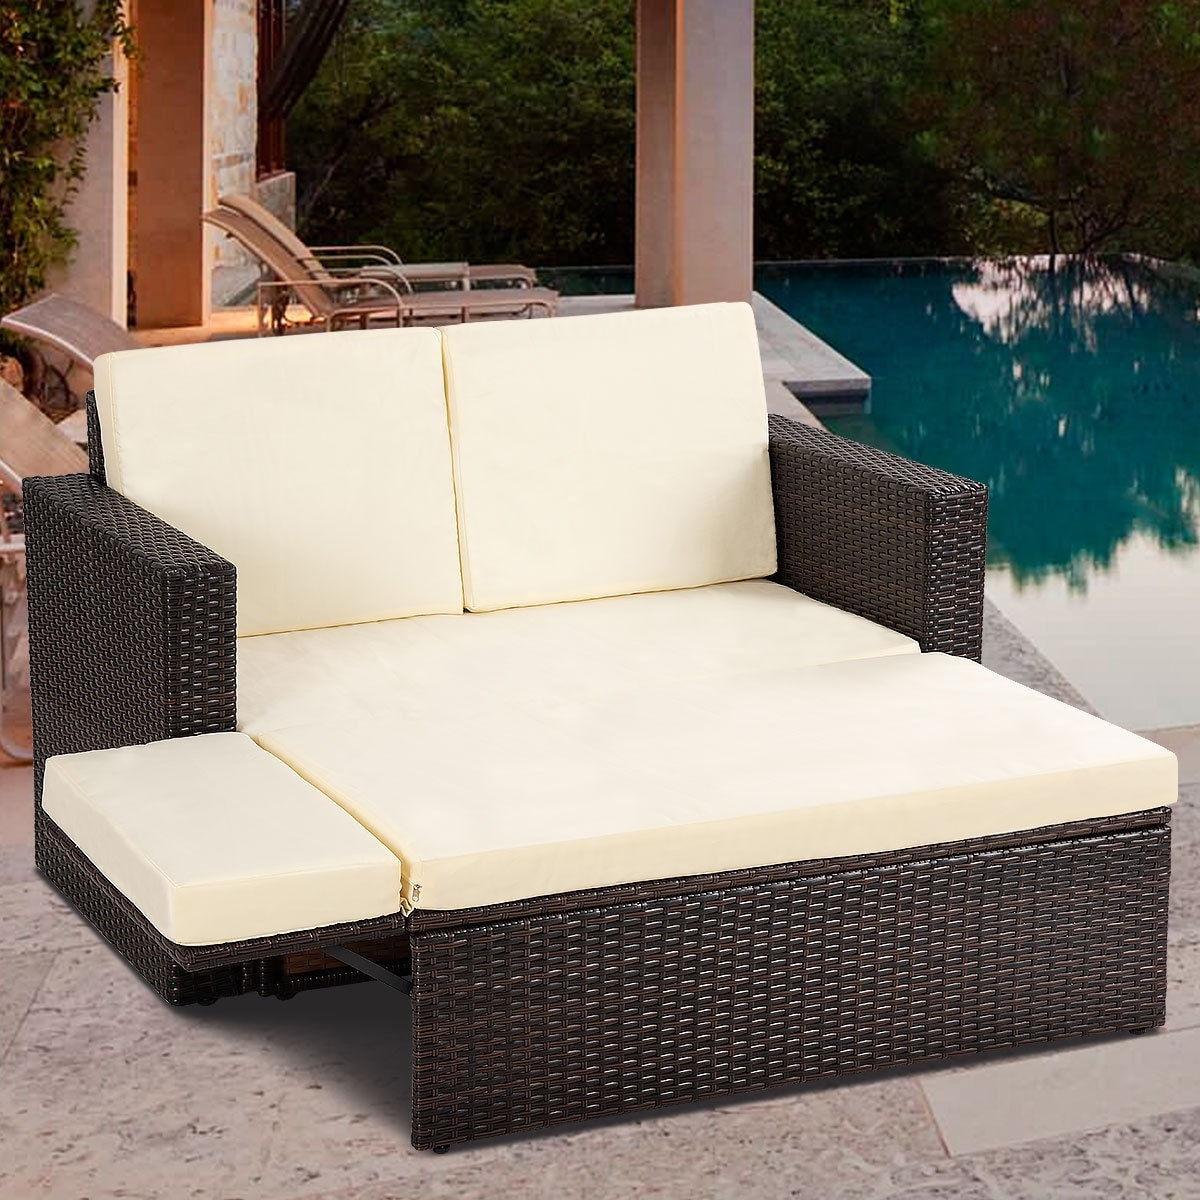 Shop Gymax 2PCS Patio Rattan Loveseat Sofa Ottoman Daybed Garden Furniture  Set W/Cushions - On Sale - Free Shipping Today - Overstock.com - 22985051 - Shop Gymax 2PCS Patio Rattan Loveseat Sofa Ottoman Daybed Garden